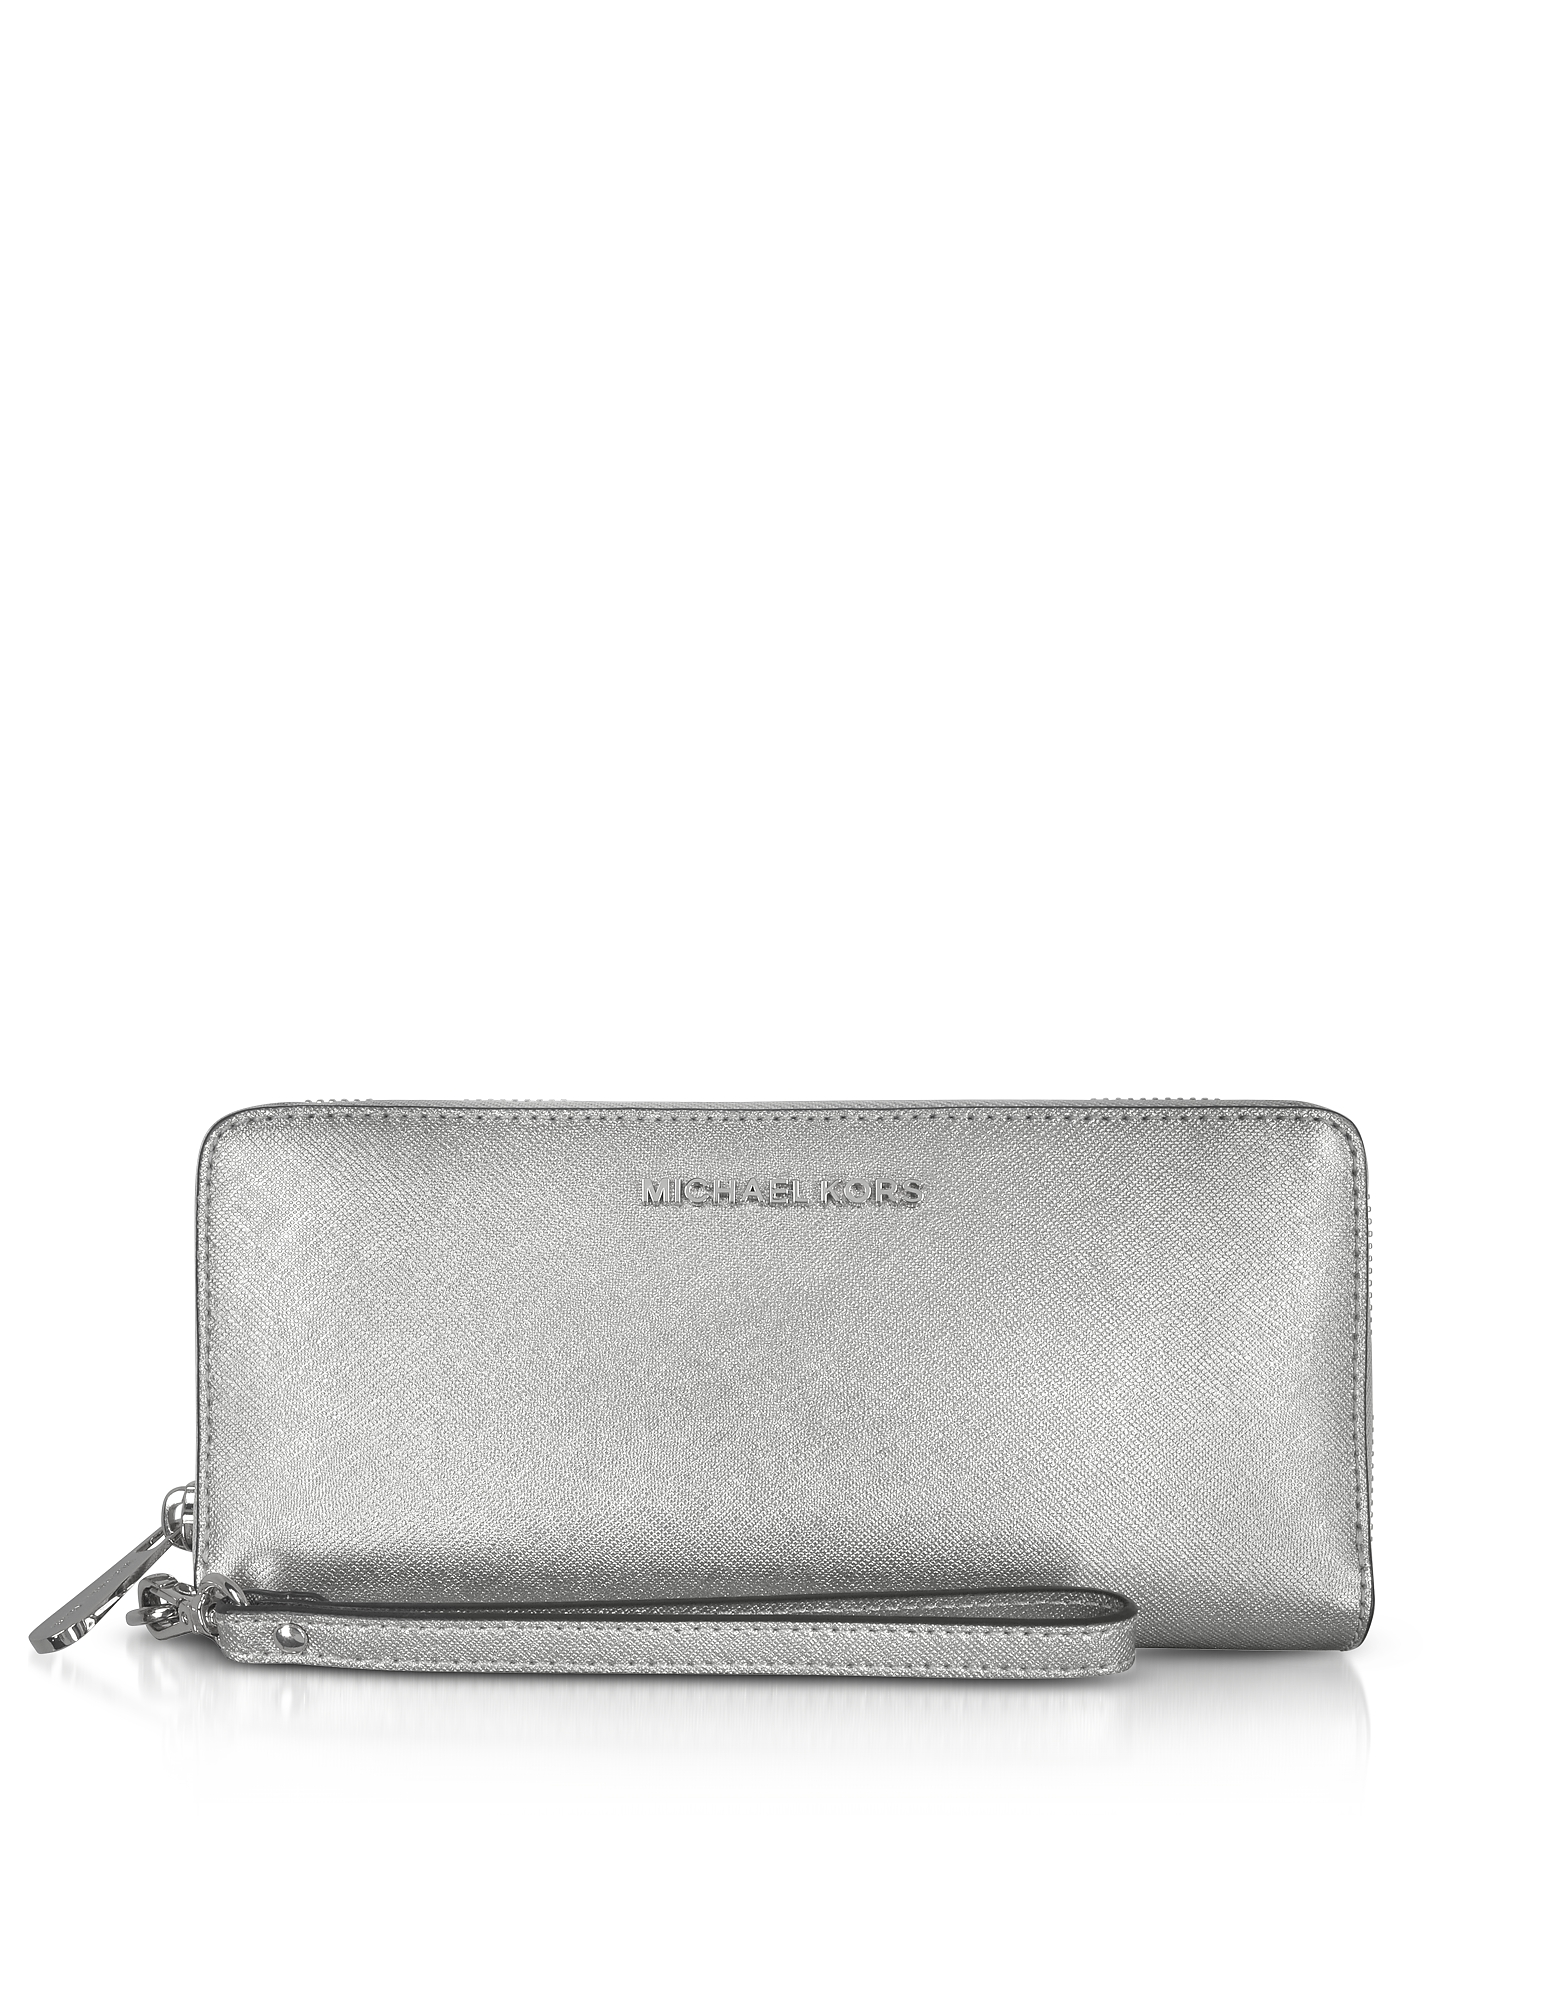 Michael Kors Handbags, Jet Set Travel Large Silver Metallic Leather Continental Wallet